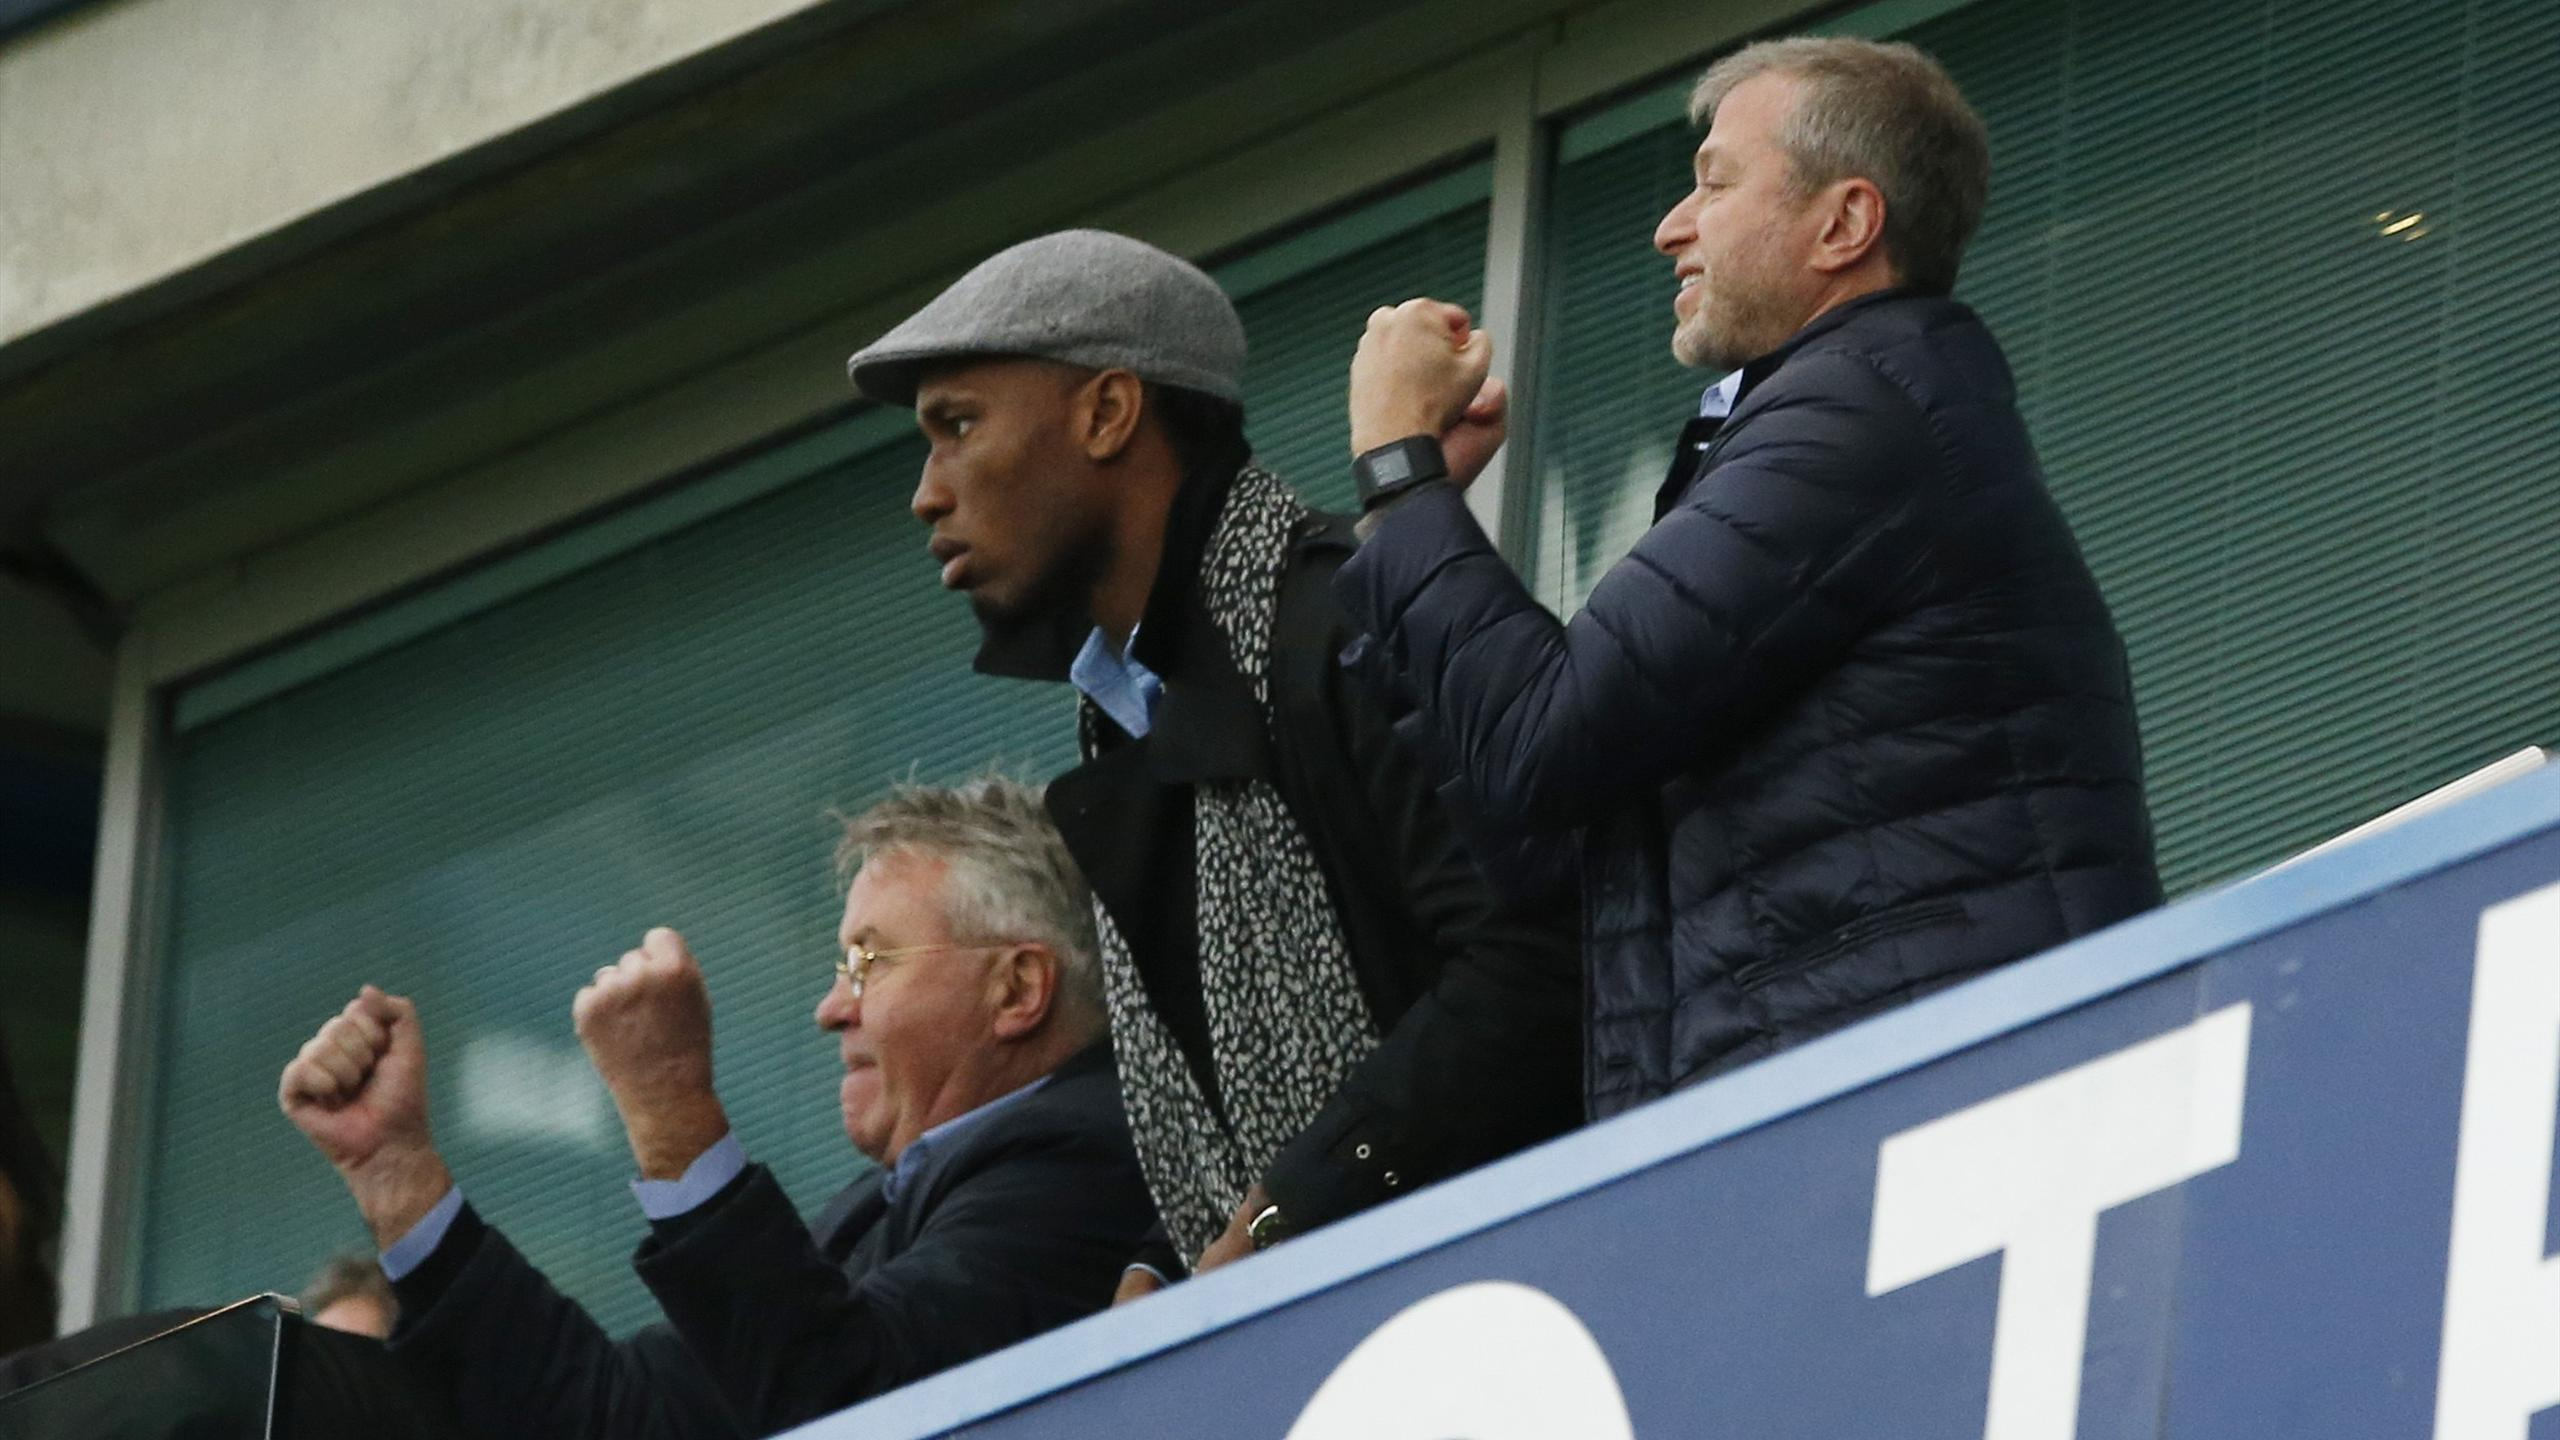 New Chelsea manager Guus Hiddink sat in the stands with Didier Drogba and owner Roman Abramovich